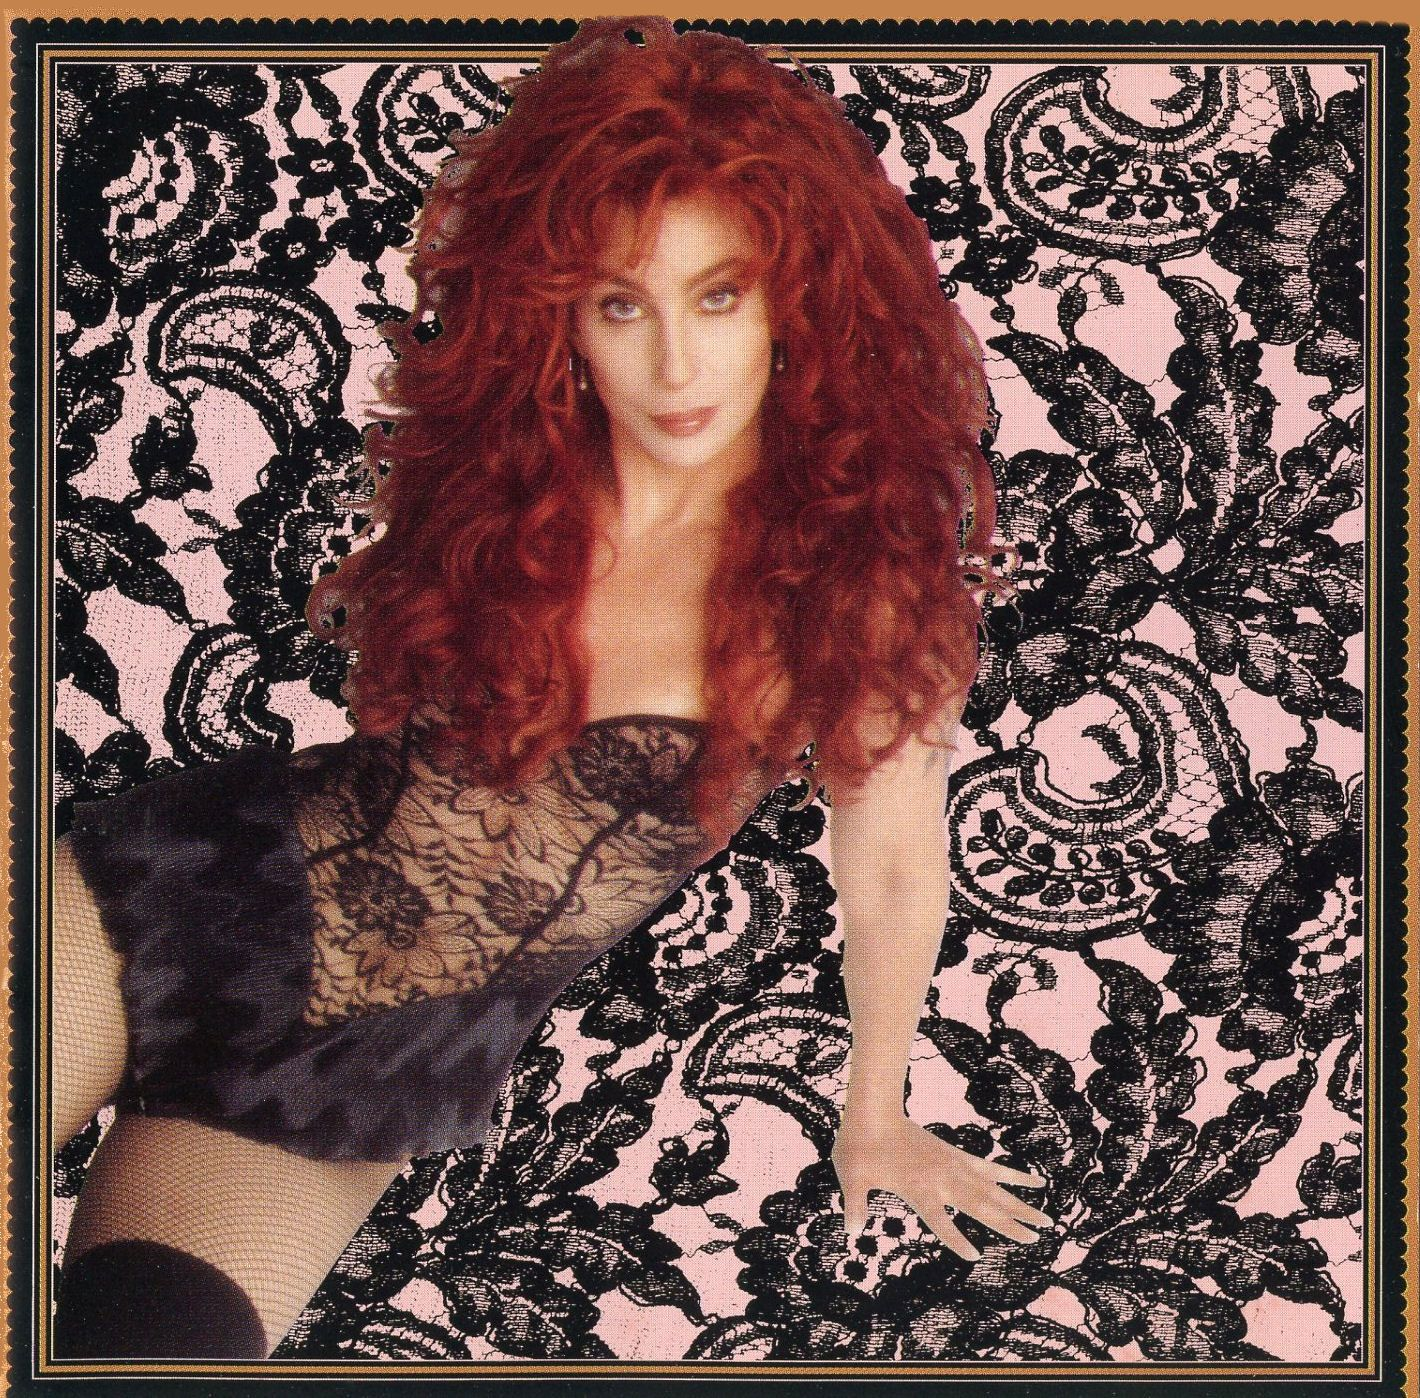 Cher - Cher's Greatest Hits: 1965-1992 album cover